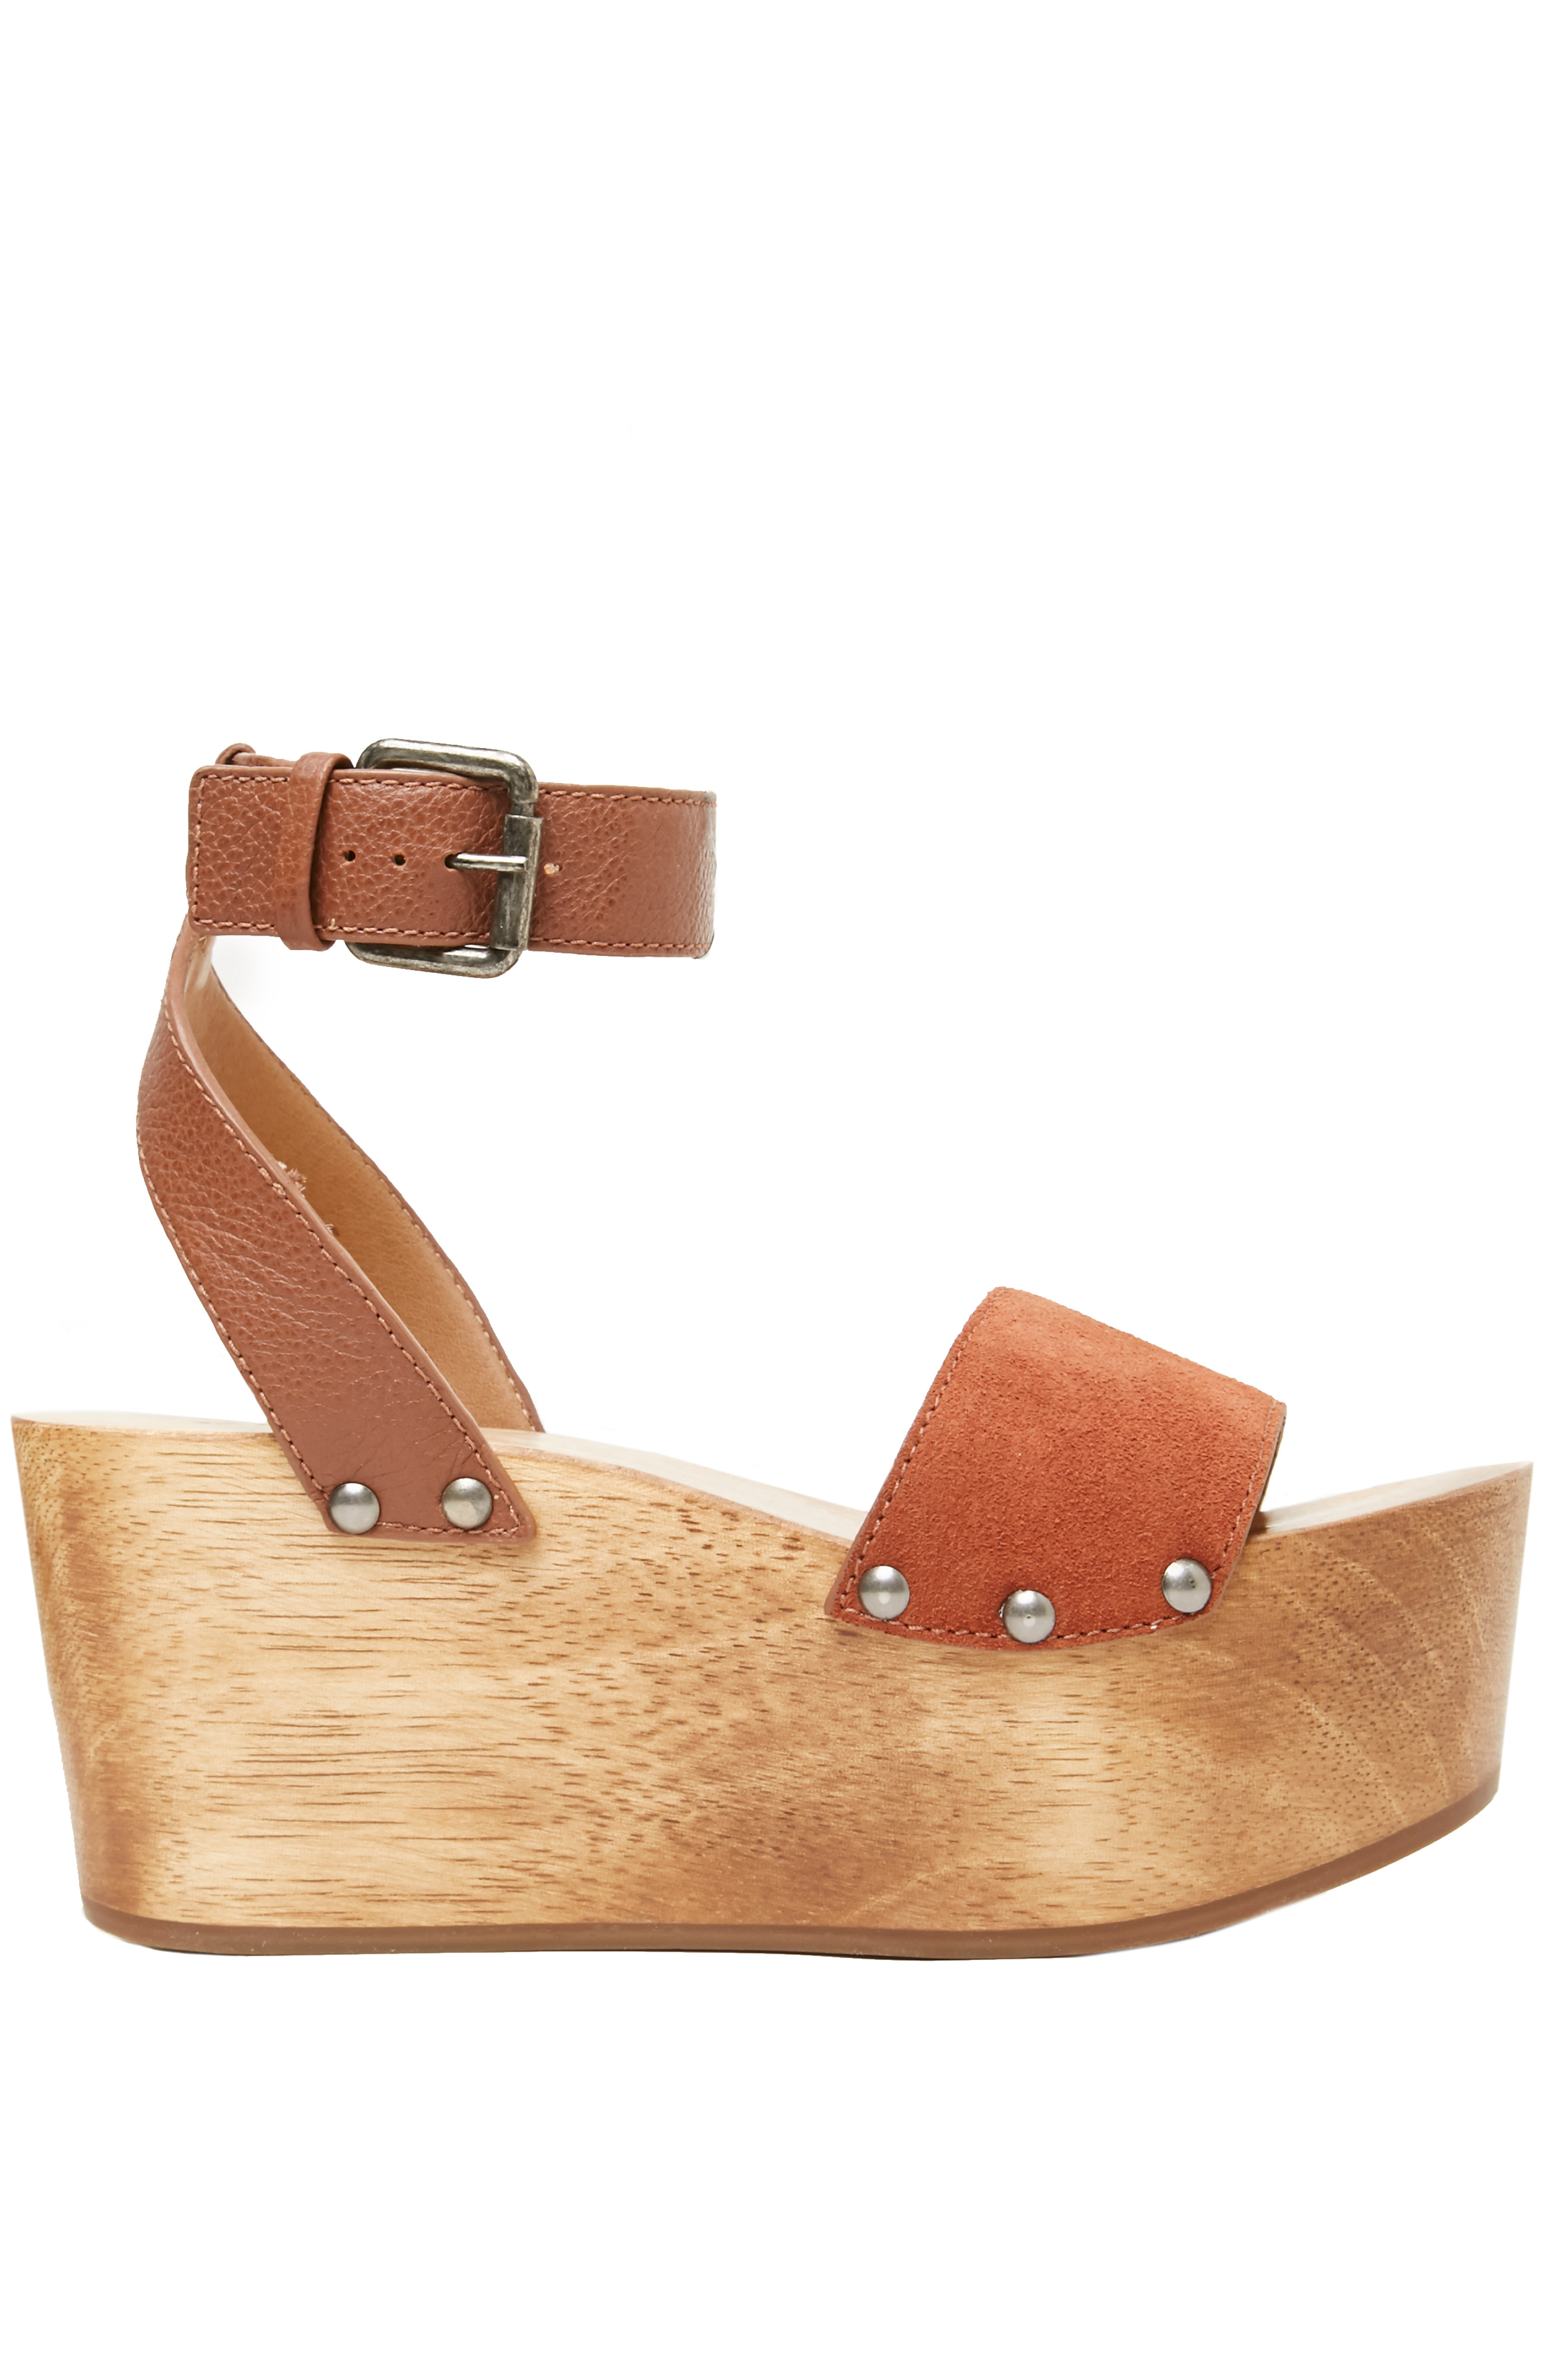 Kelsi Dagger Brooklyn Leather Willow Ankle Strap Platform Heel